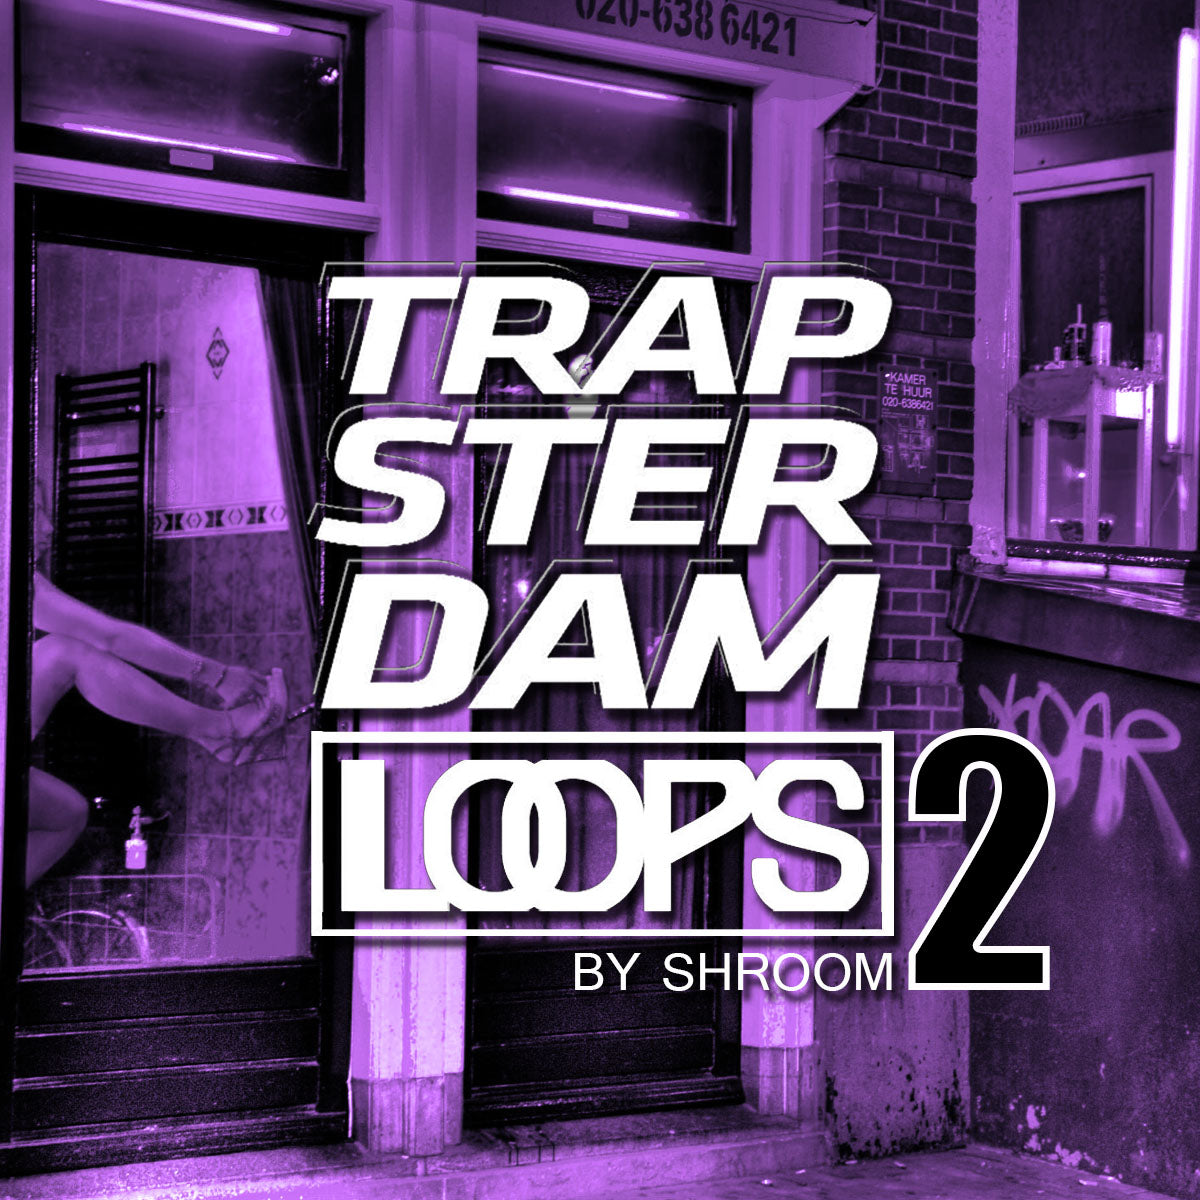 Trapsterdam Loops Vol. 2